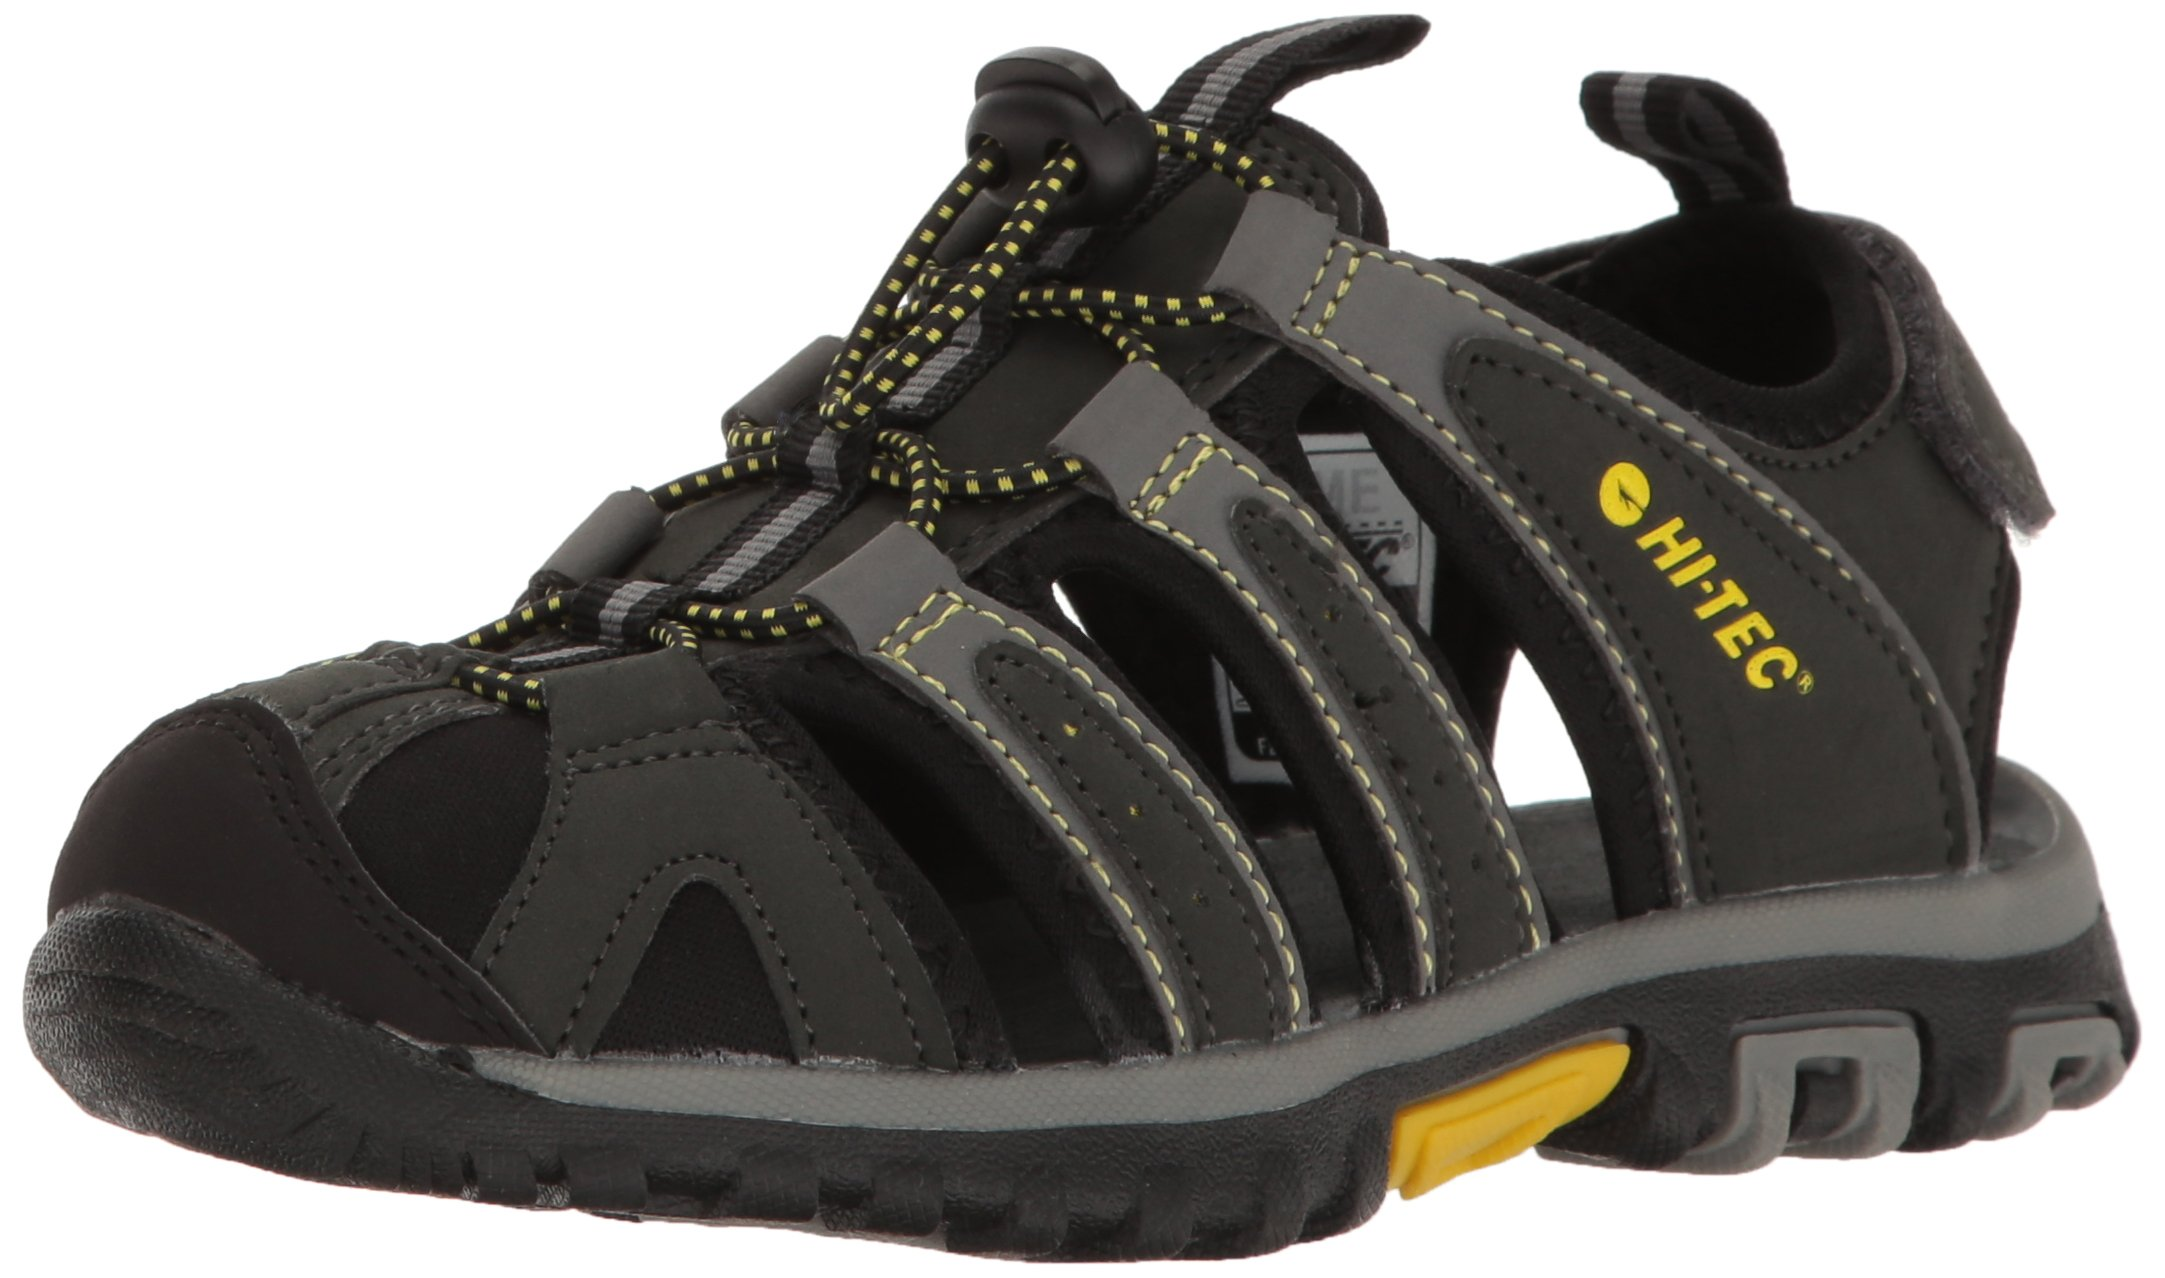 Hi-Tec Boys' Cove Jr Sandal, Black/Charcoal/Super Lemon, 11 M US Little Kid